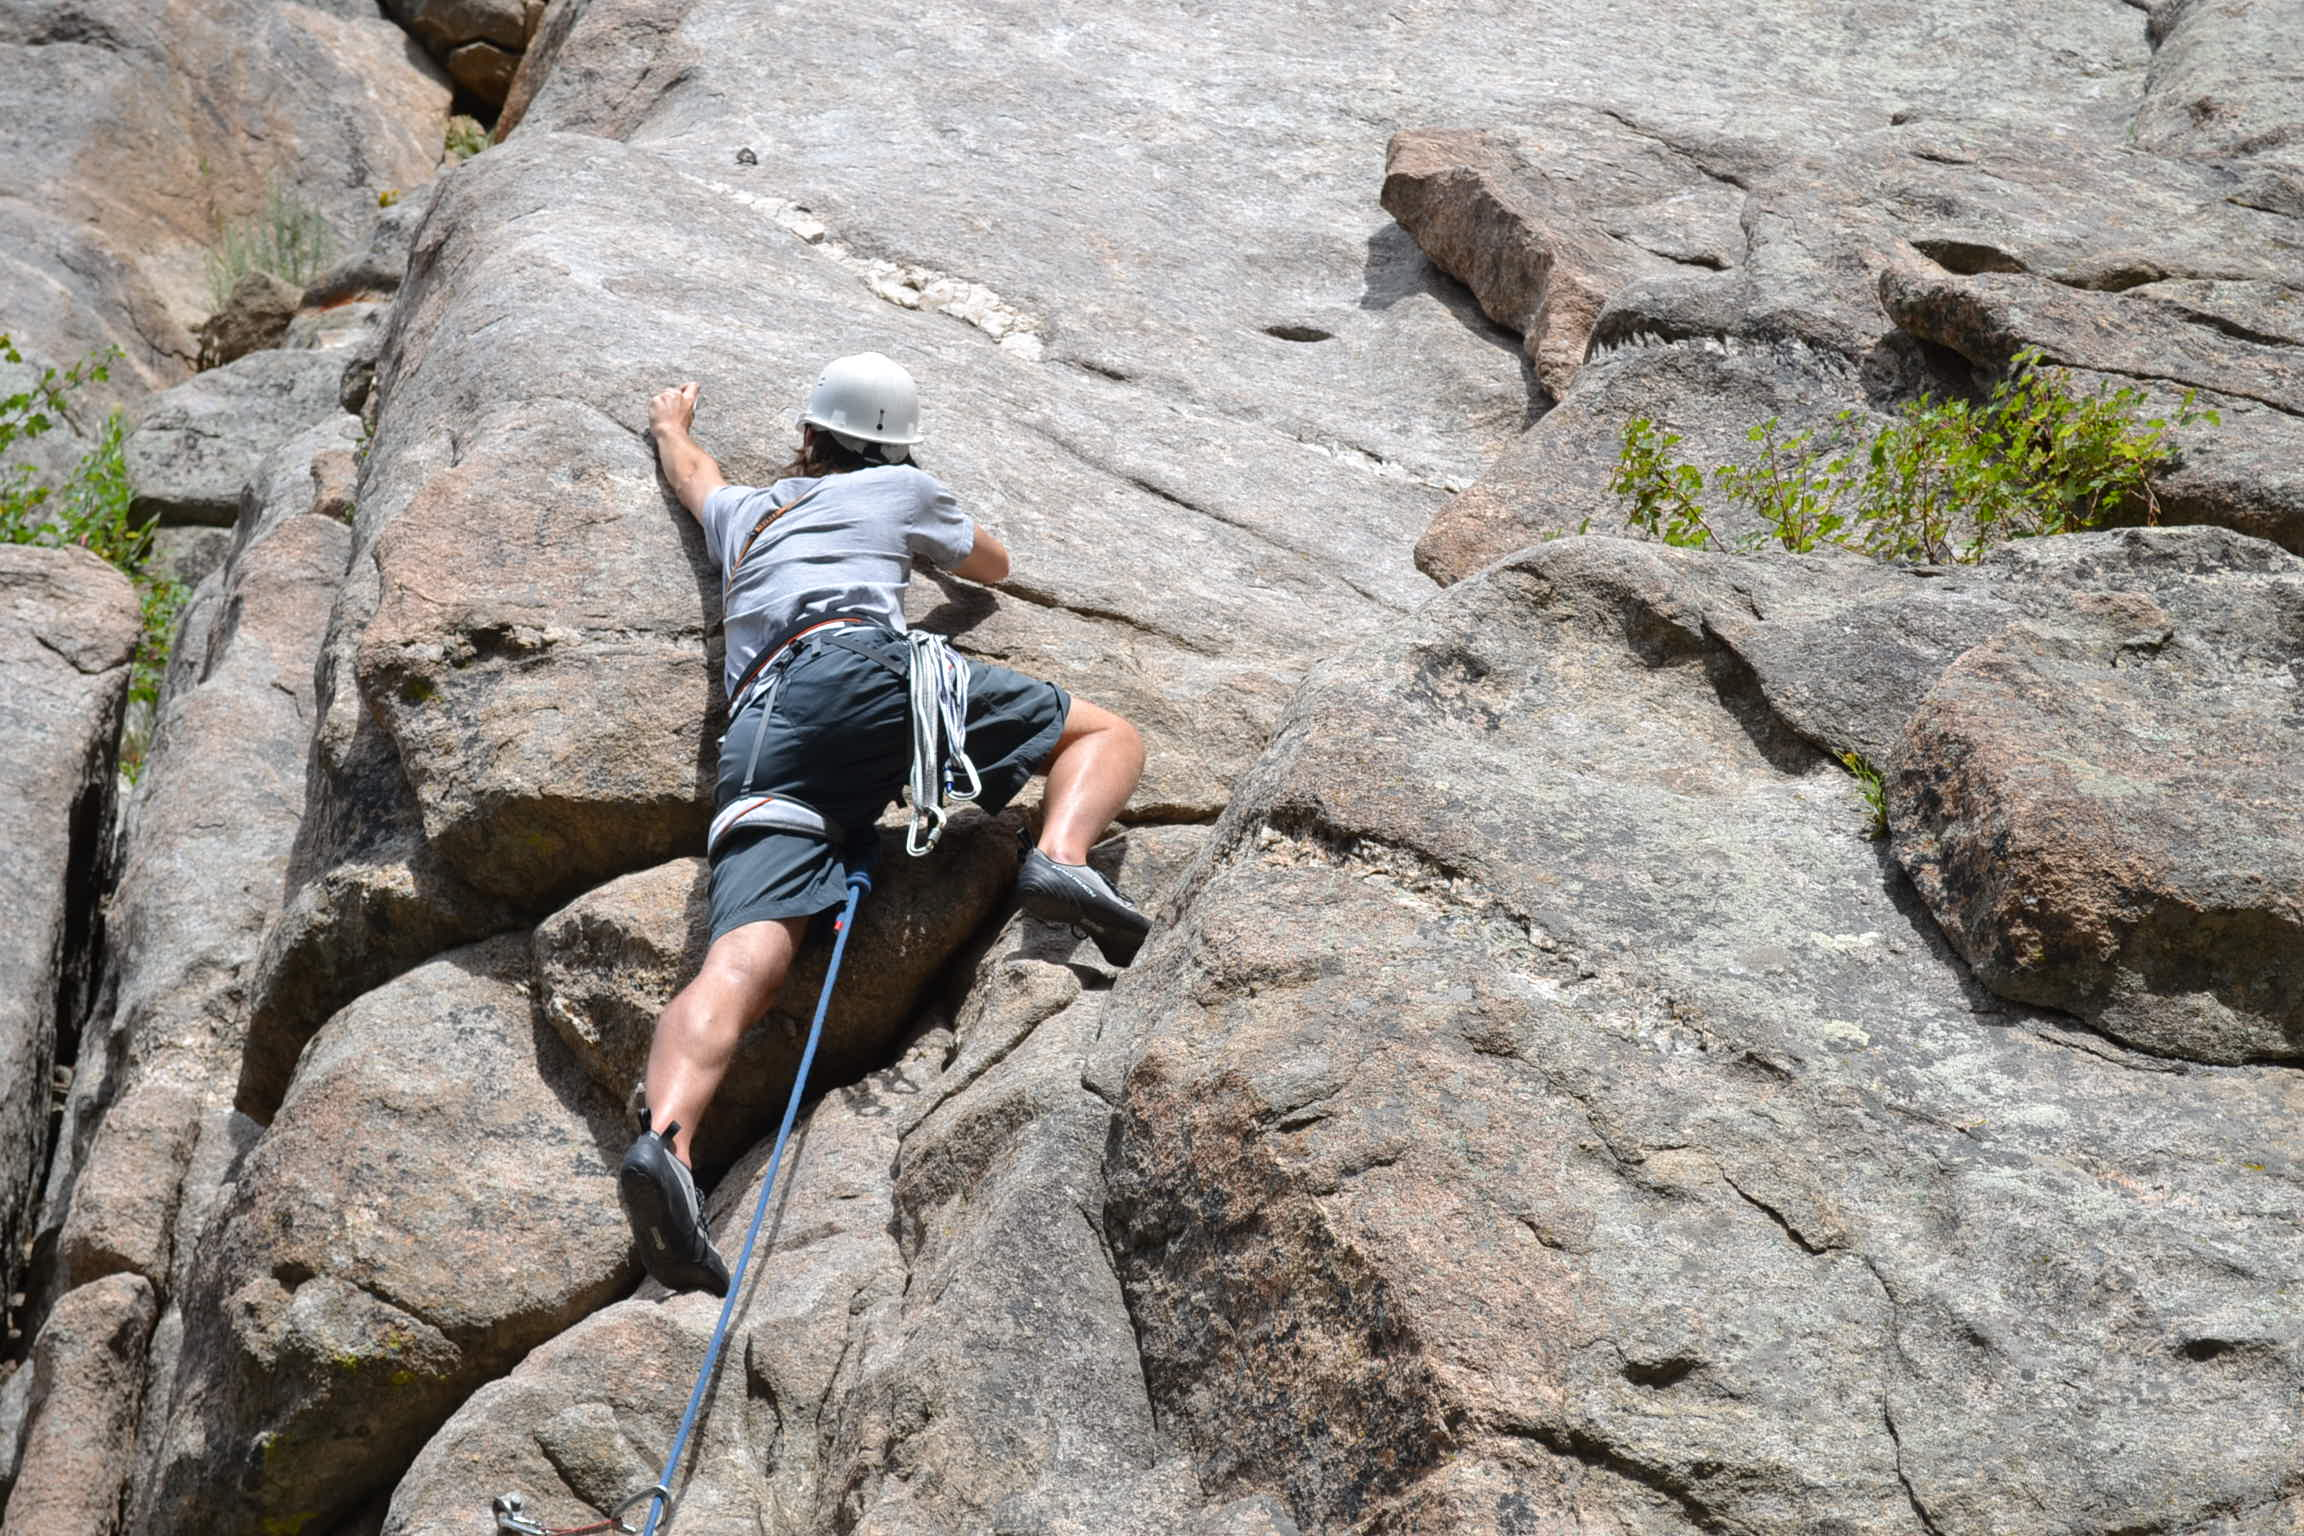 Dylan climbing in Colorado